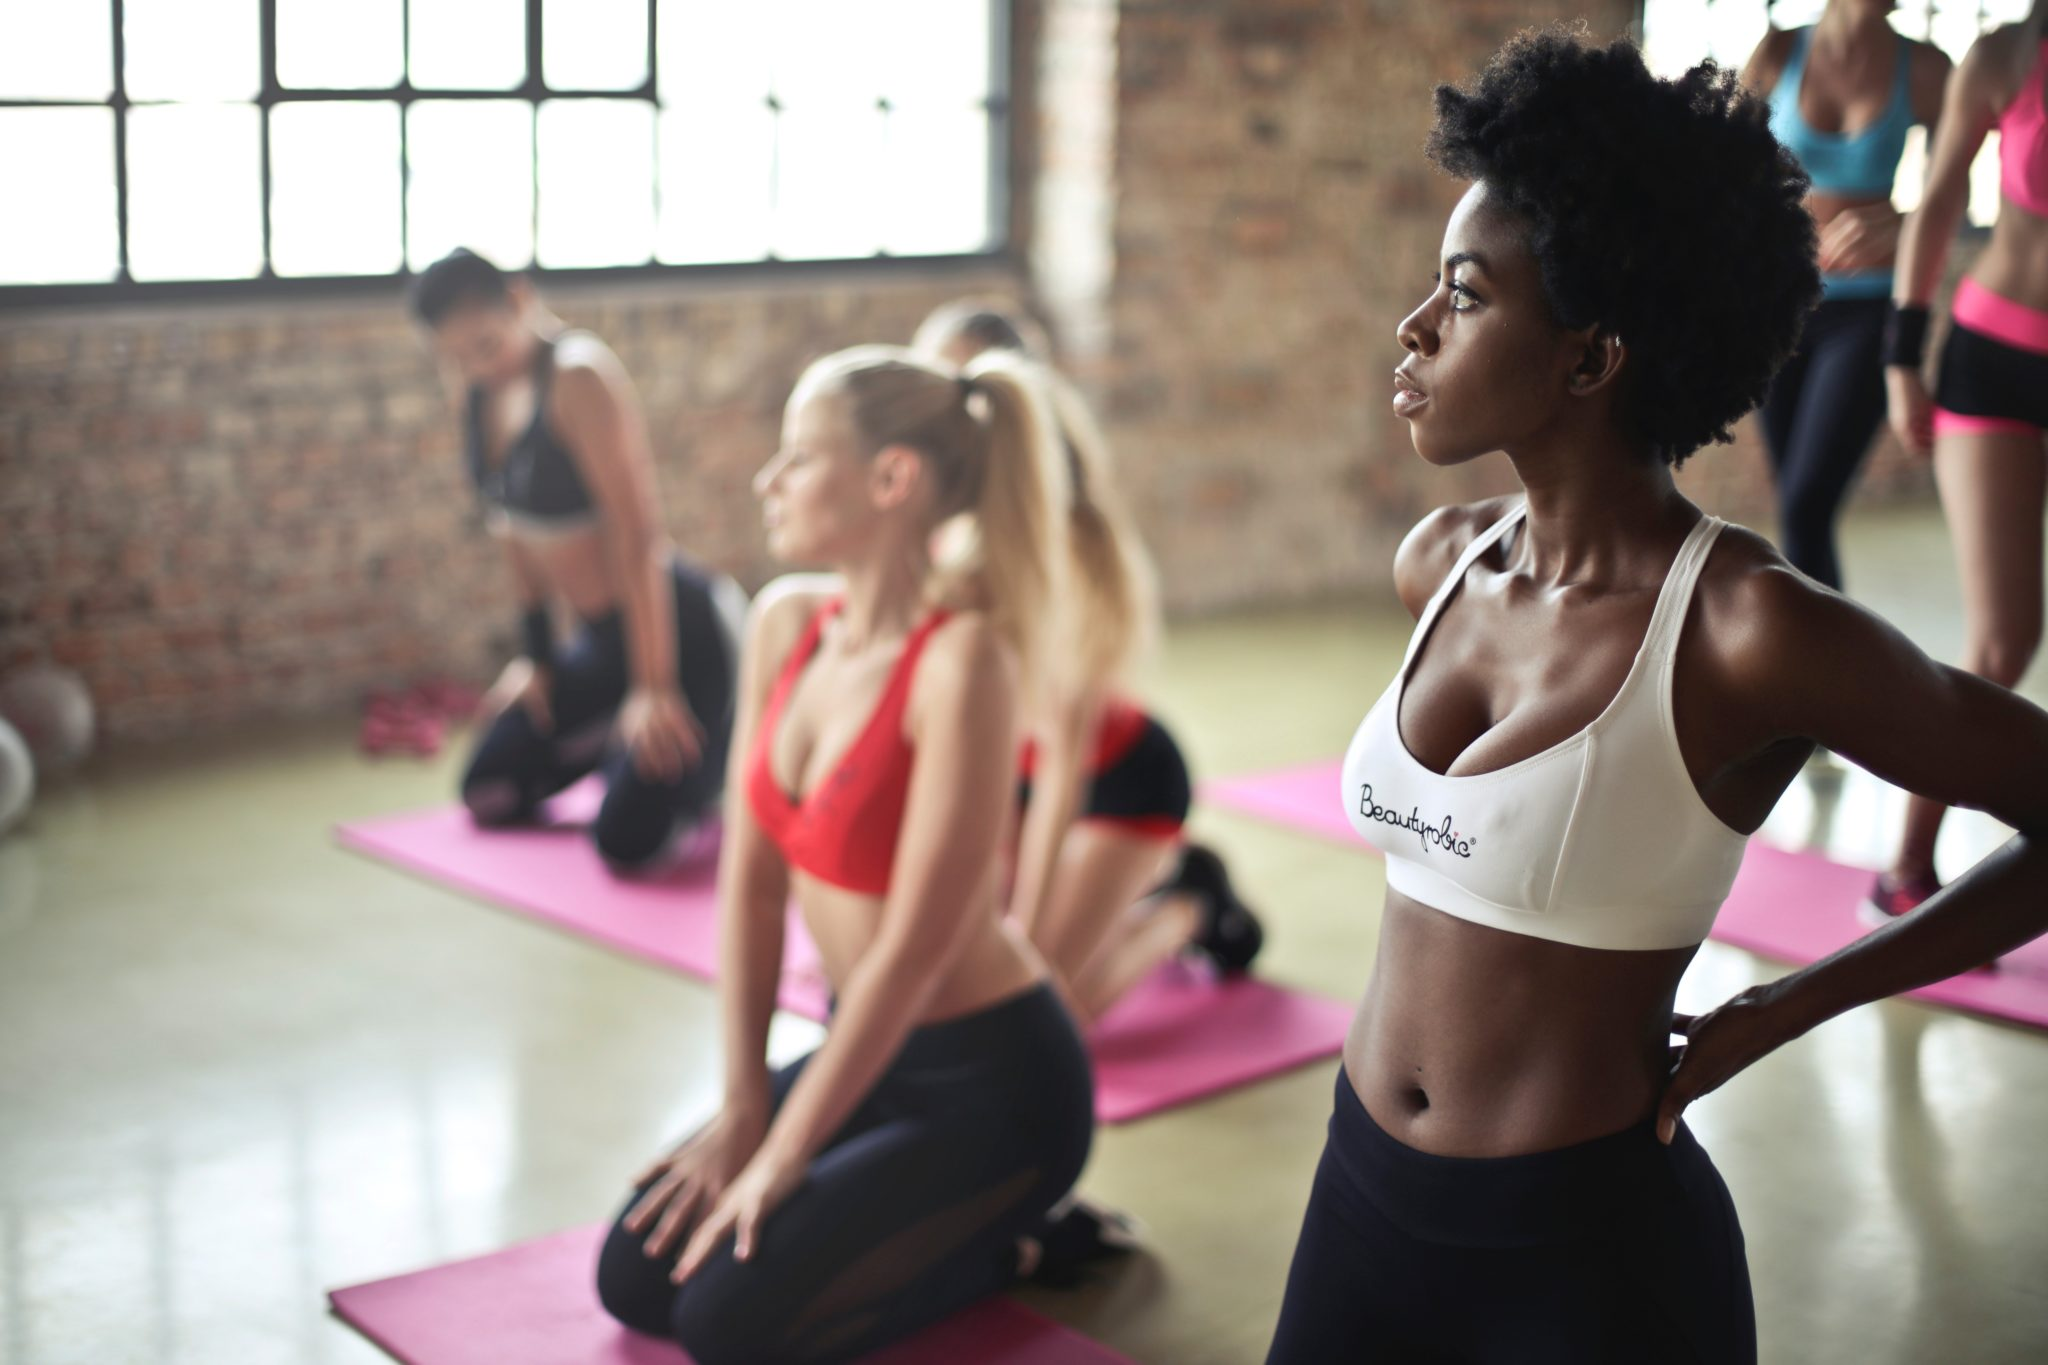 3 gym hacks to avoid germs